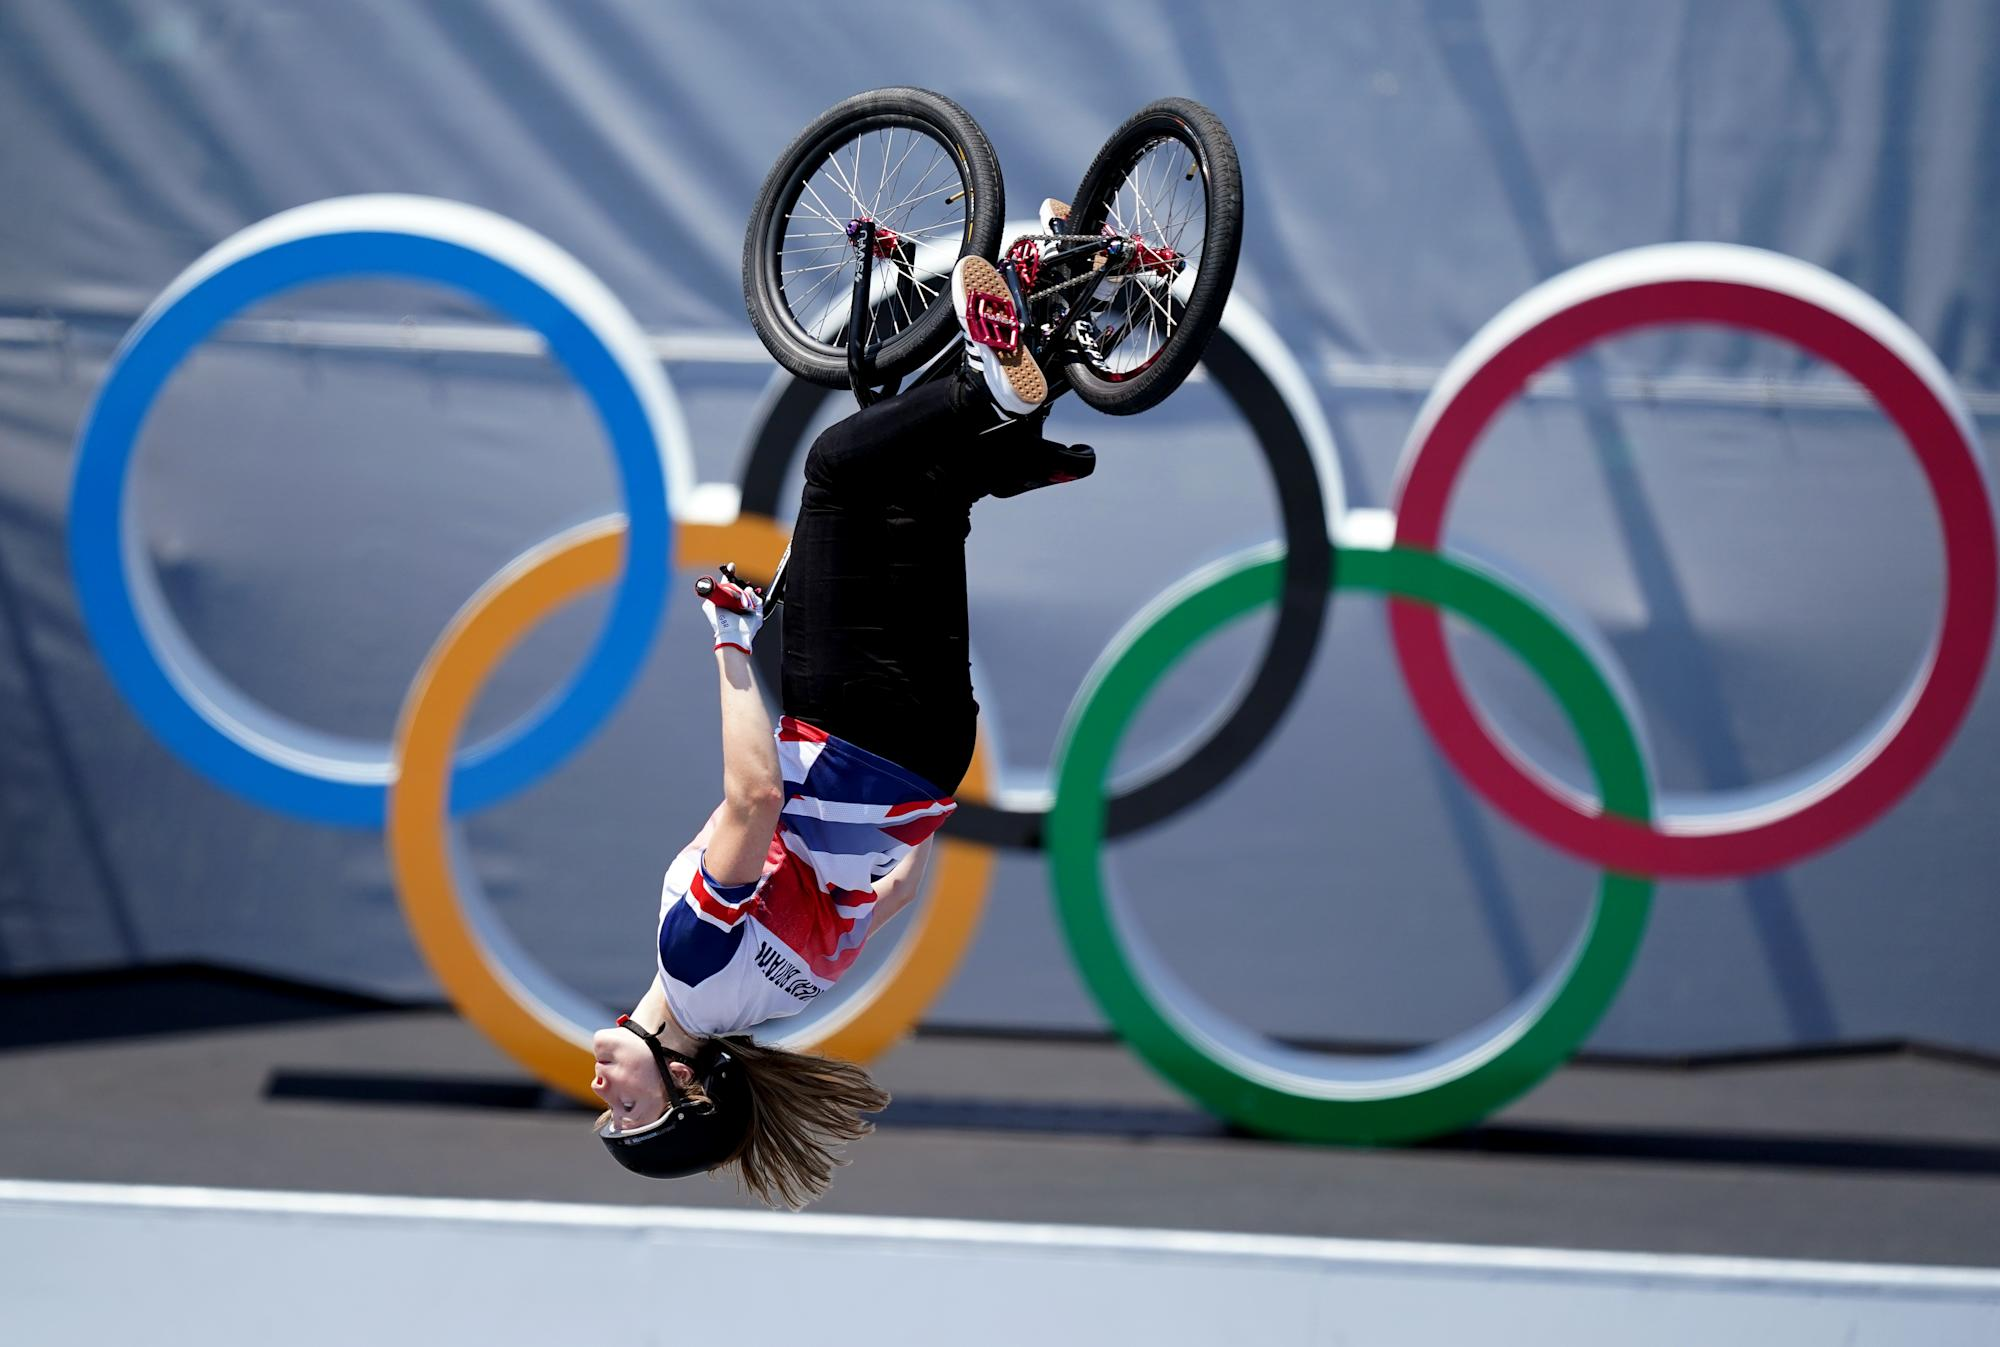 Pedal superpower! Team GB first nation in history to claim gold in every cycling discipline